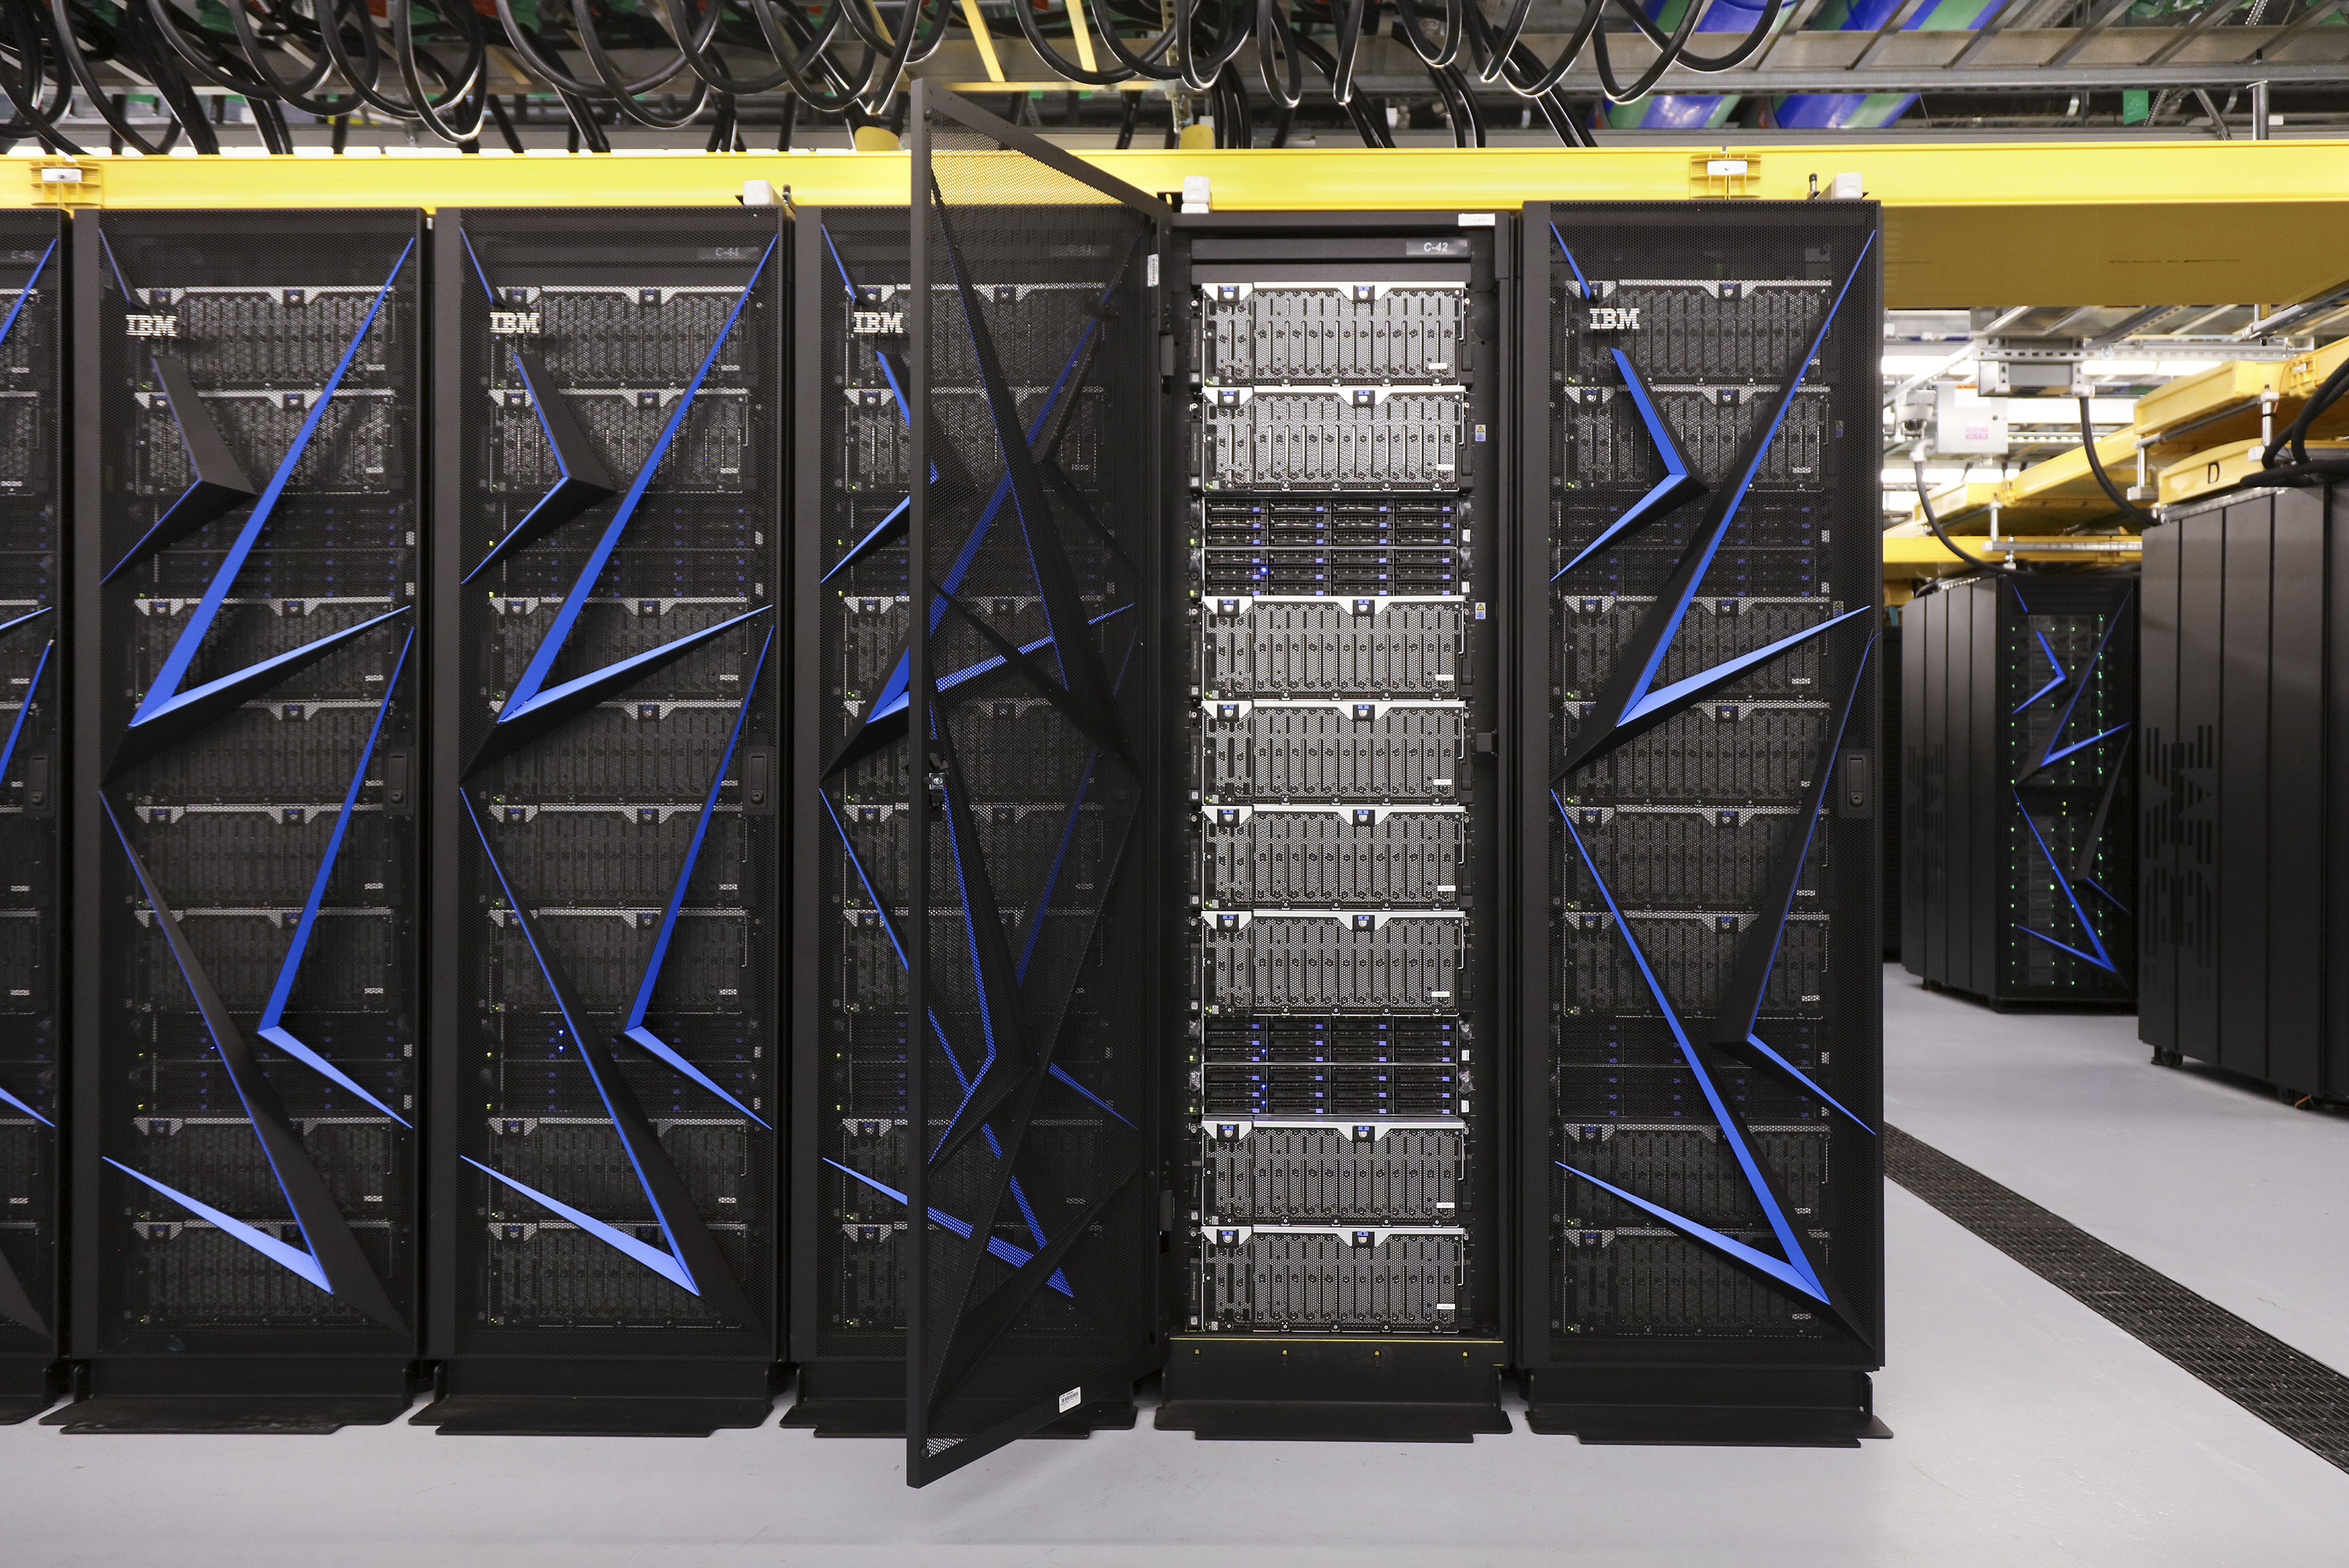 USA  one-ups China in supercomputing race with IBM-made machine